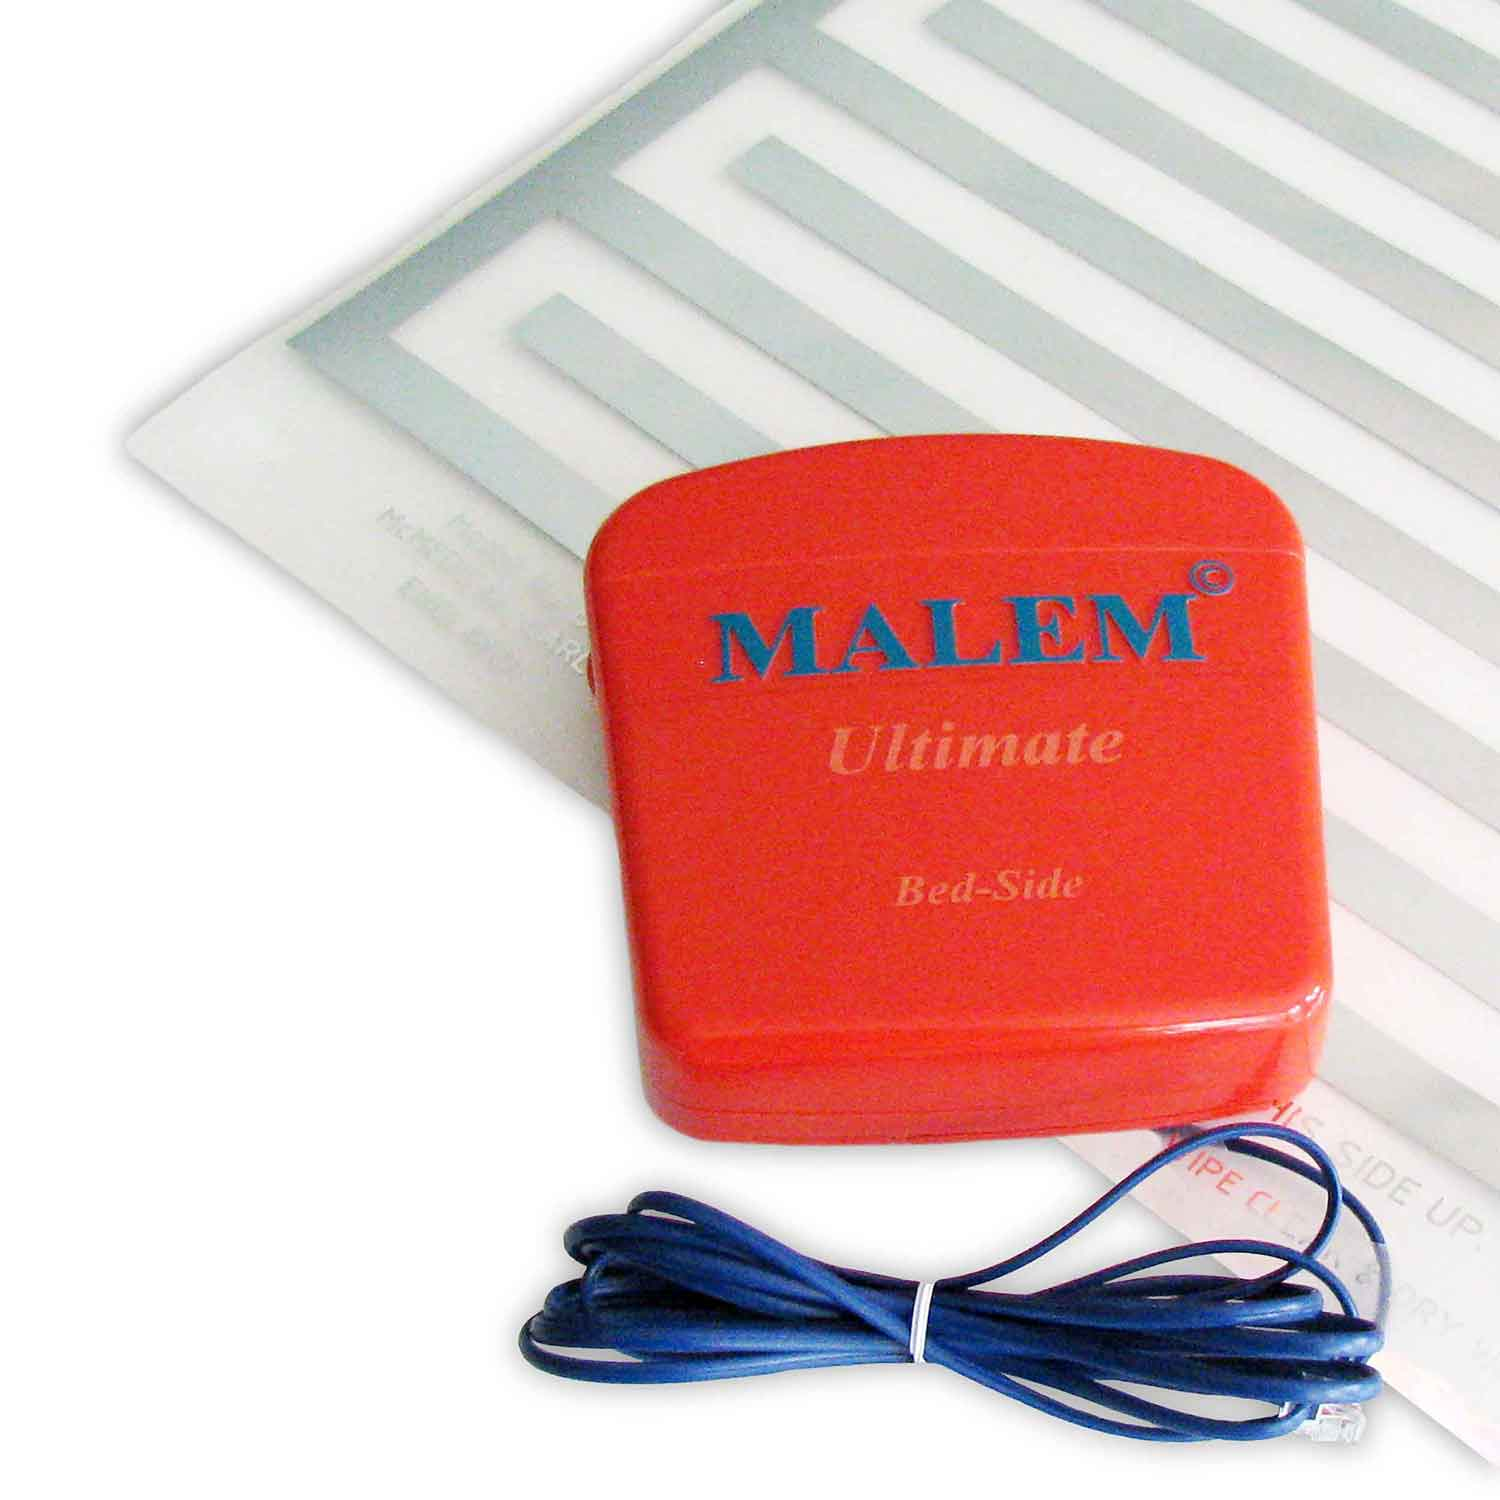 Alarms-Malem ULTIMATE Bed-side Bedwetting Alarm with Pad